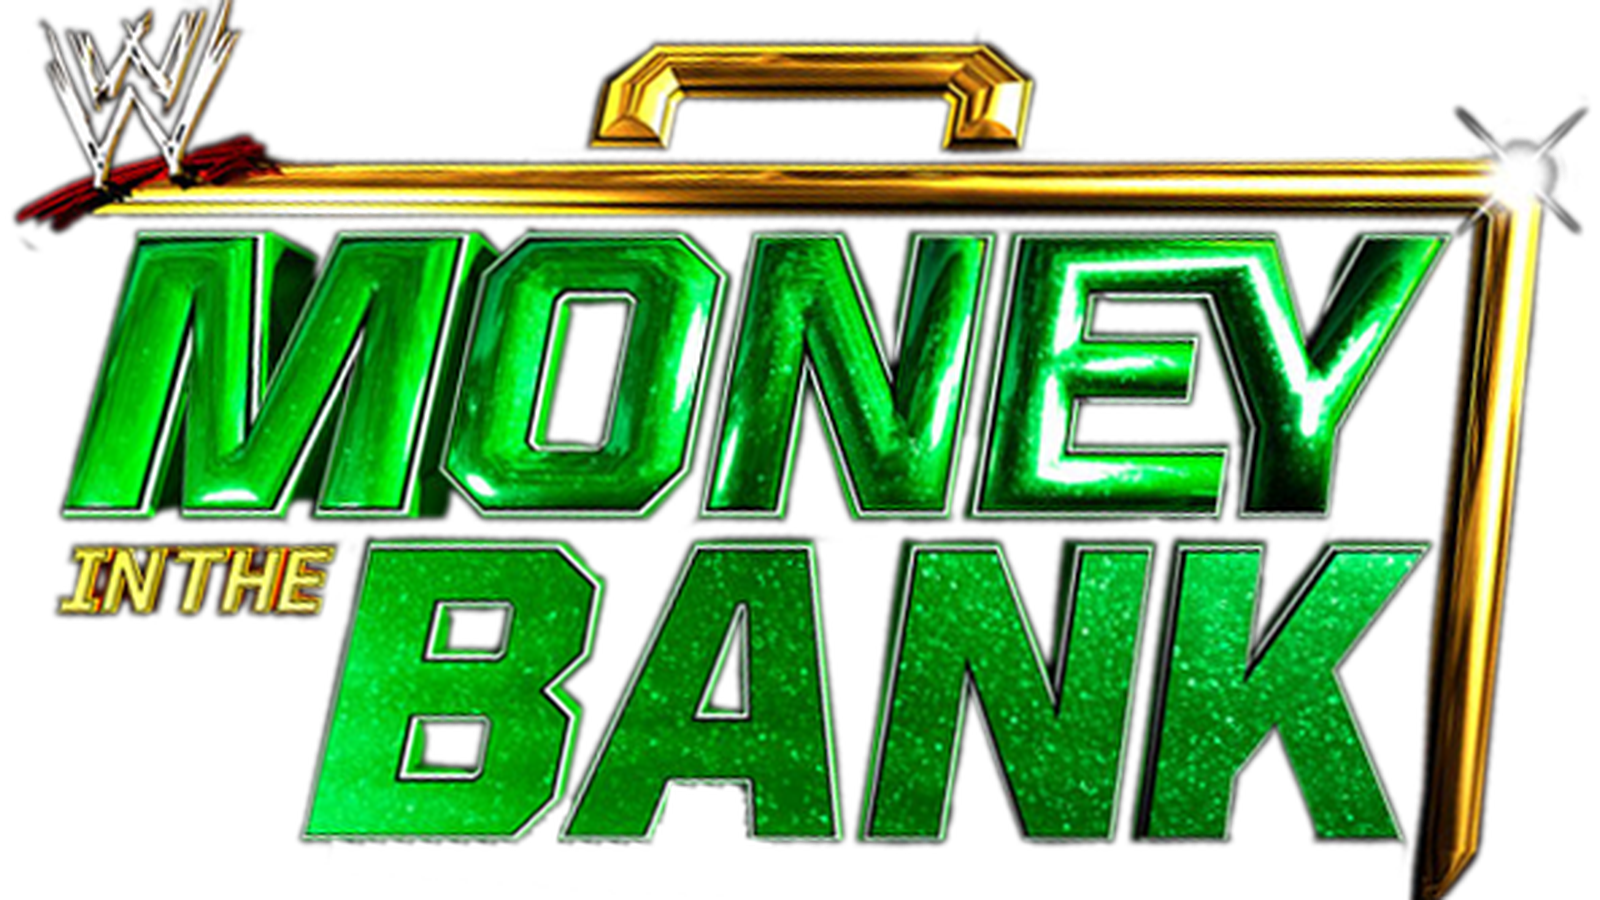 WWE Money in the Bank 2013 poster - Cageside Seats